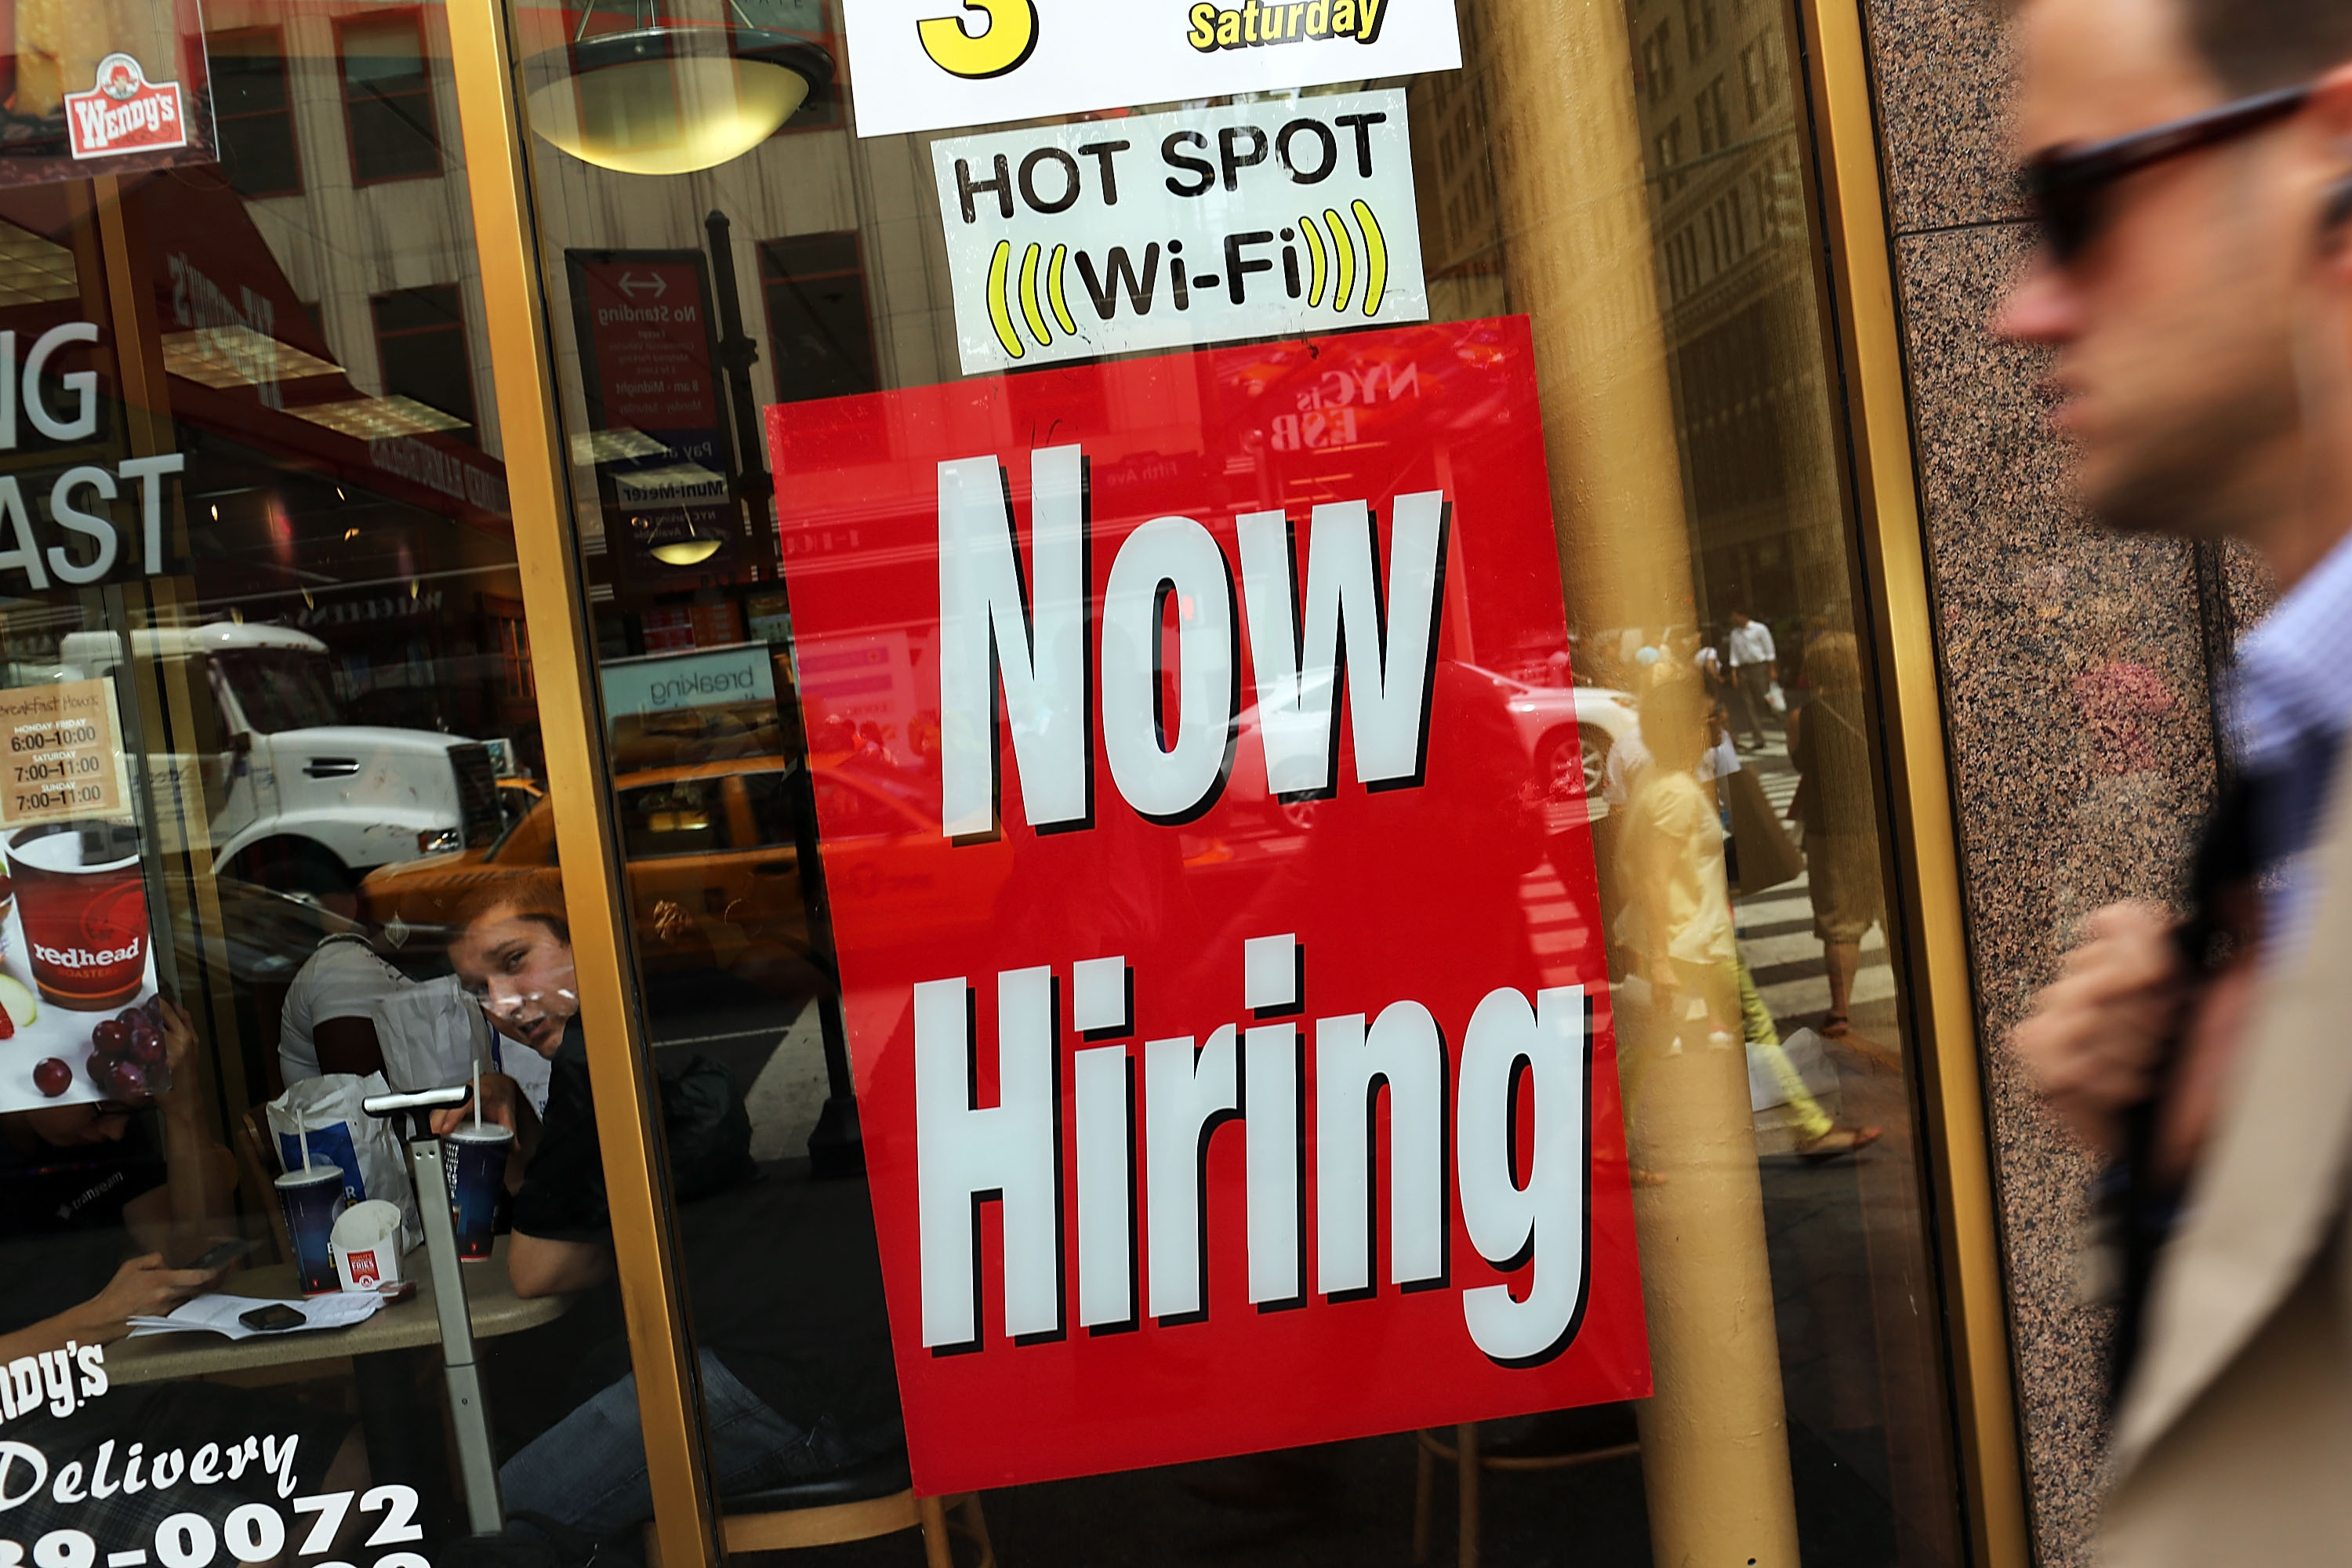 A  now hiring  sign is viewed in the window of a fast food restaurant on August 7, 2012 in New York City.